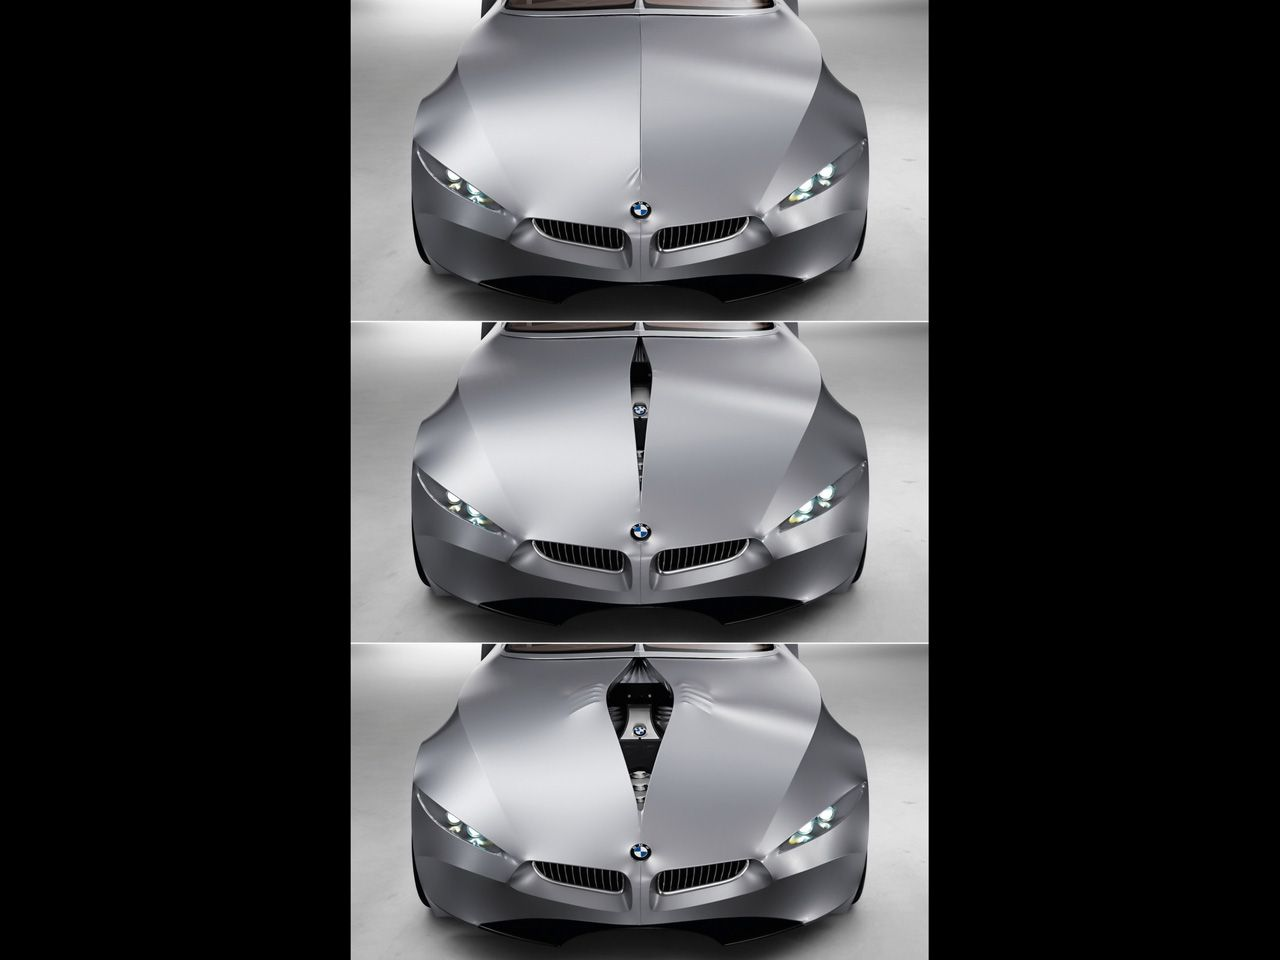 2008-BMW-Gina-Light-Visionary-Model-Engine-Cover-Opens-up | Cars ...